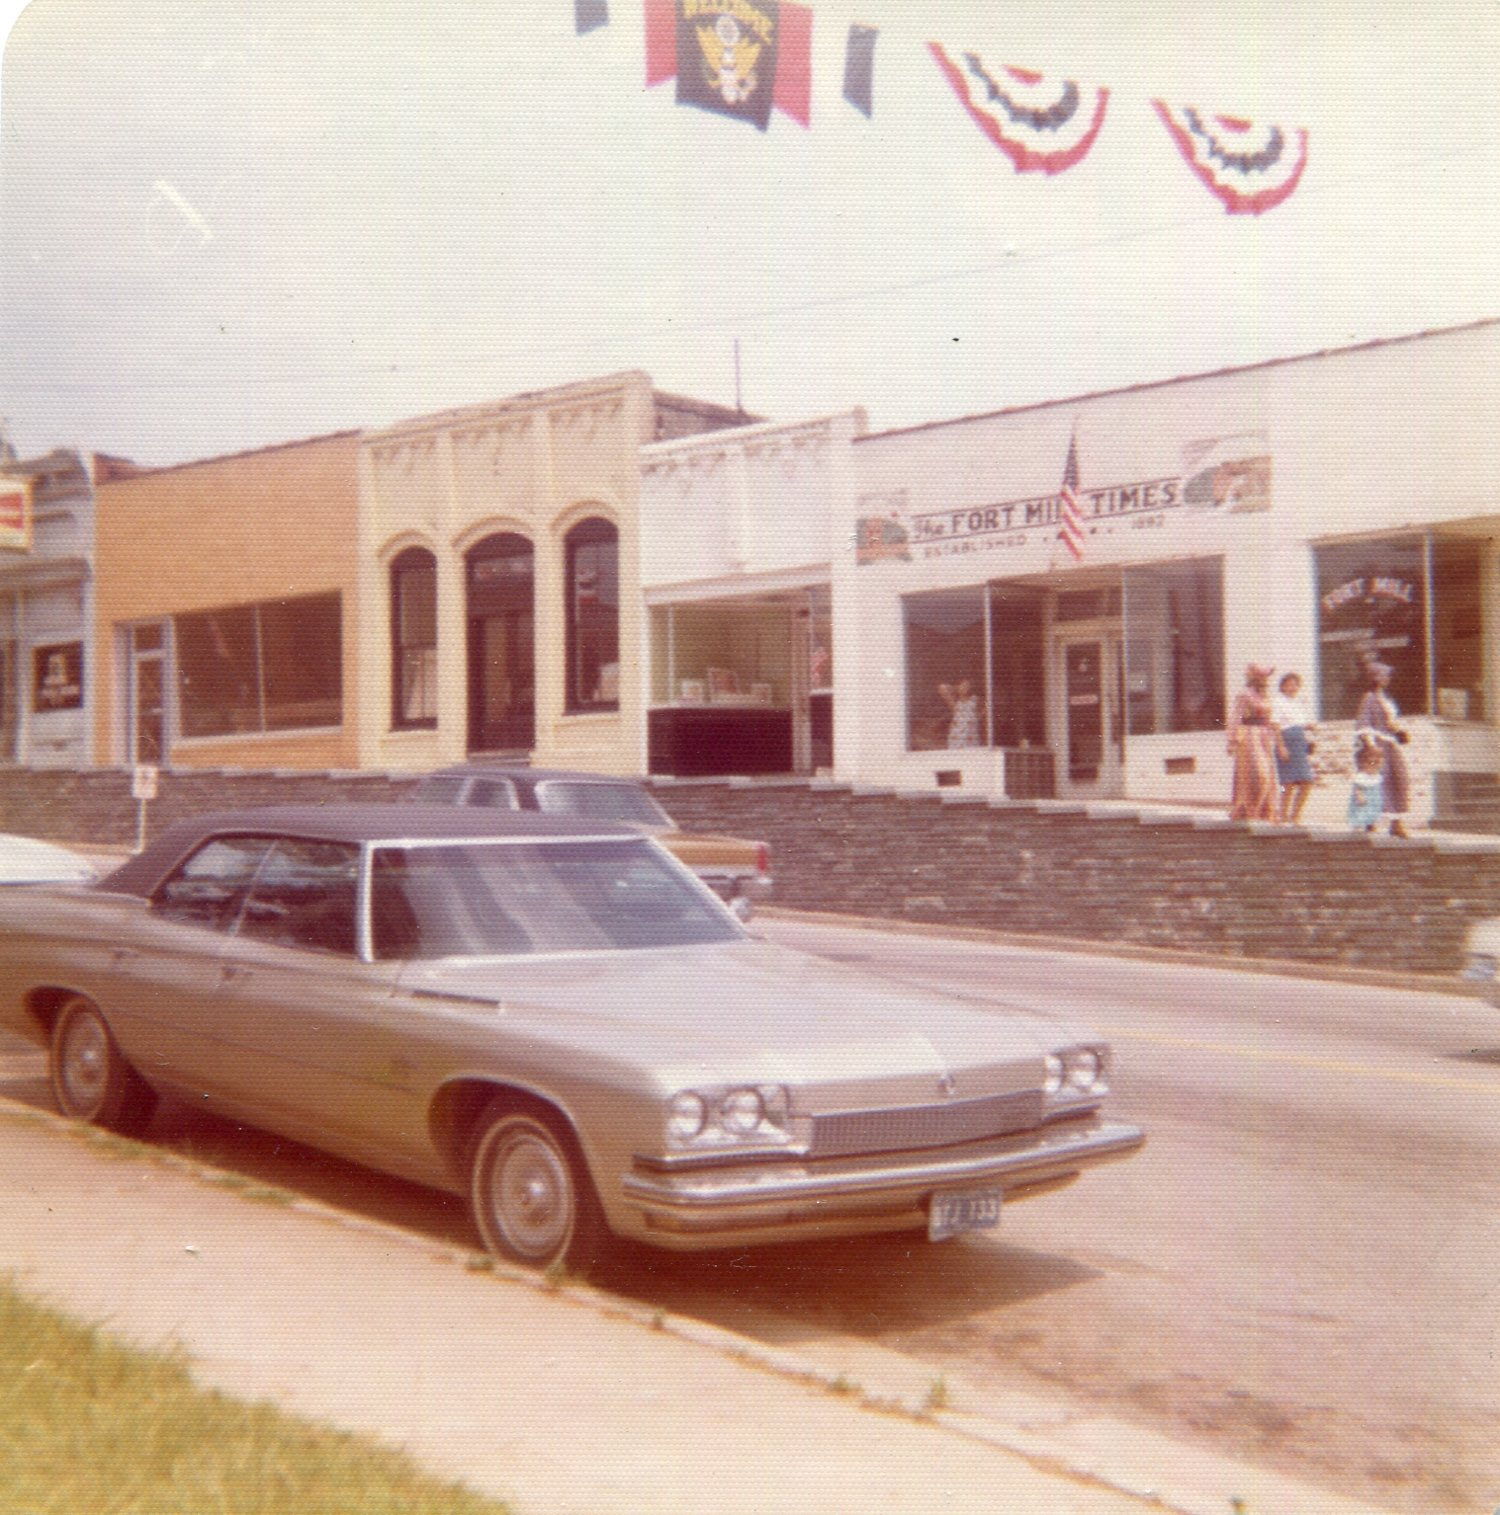 116 Main Street shown above when it was the Fort Mill Times